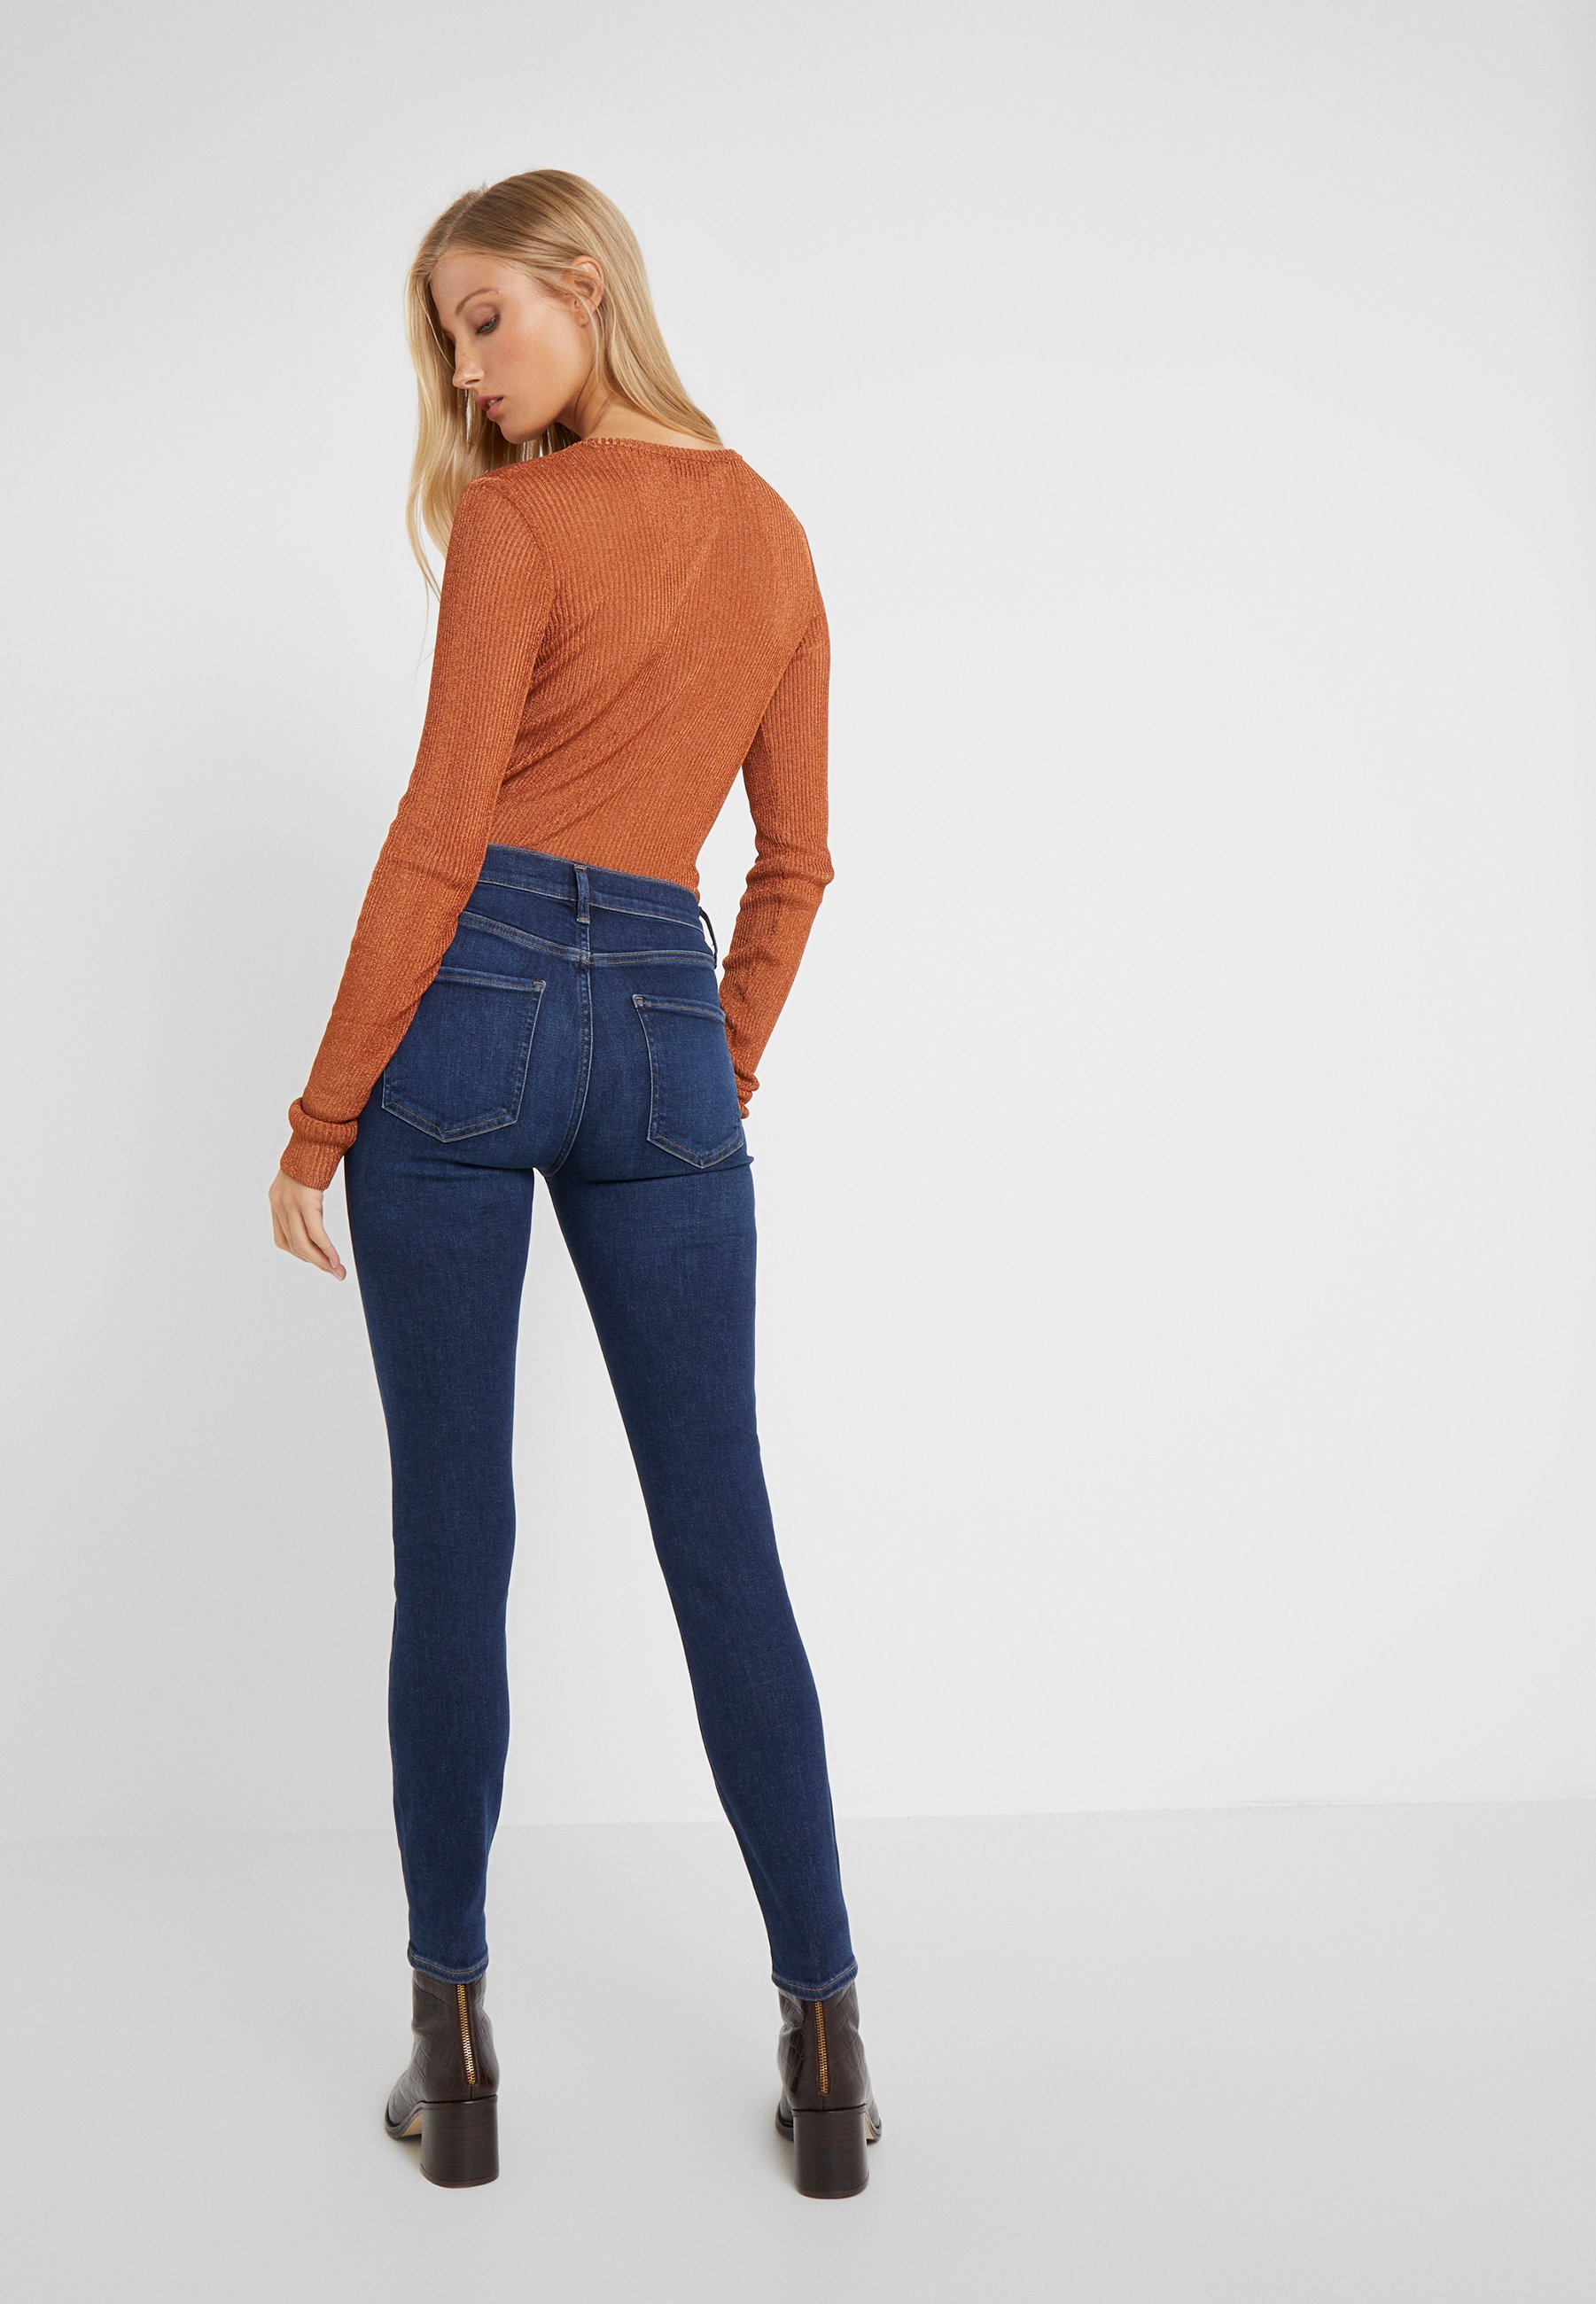 Prelude SophieJeans SophieJeans Prelude Agolde Prelude Skinny Skinny Skinny Agolde Agolde Agolde SophieJeans F1K3ulJcT